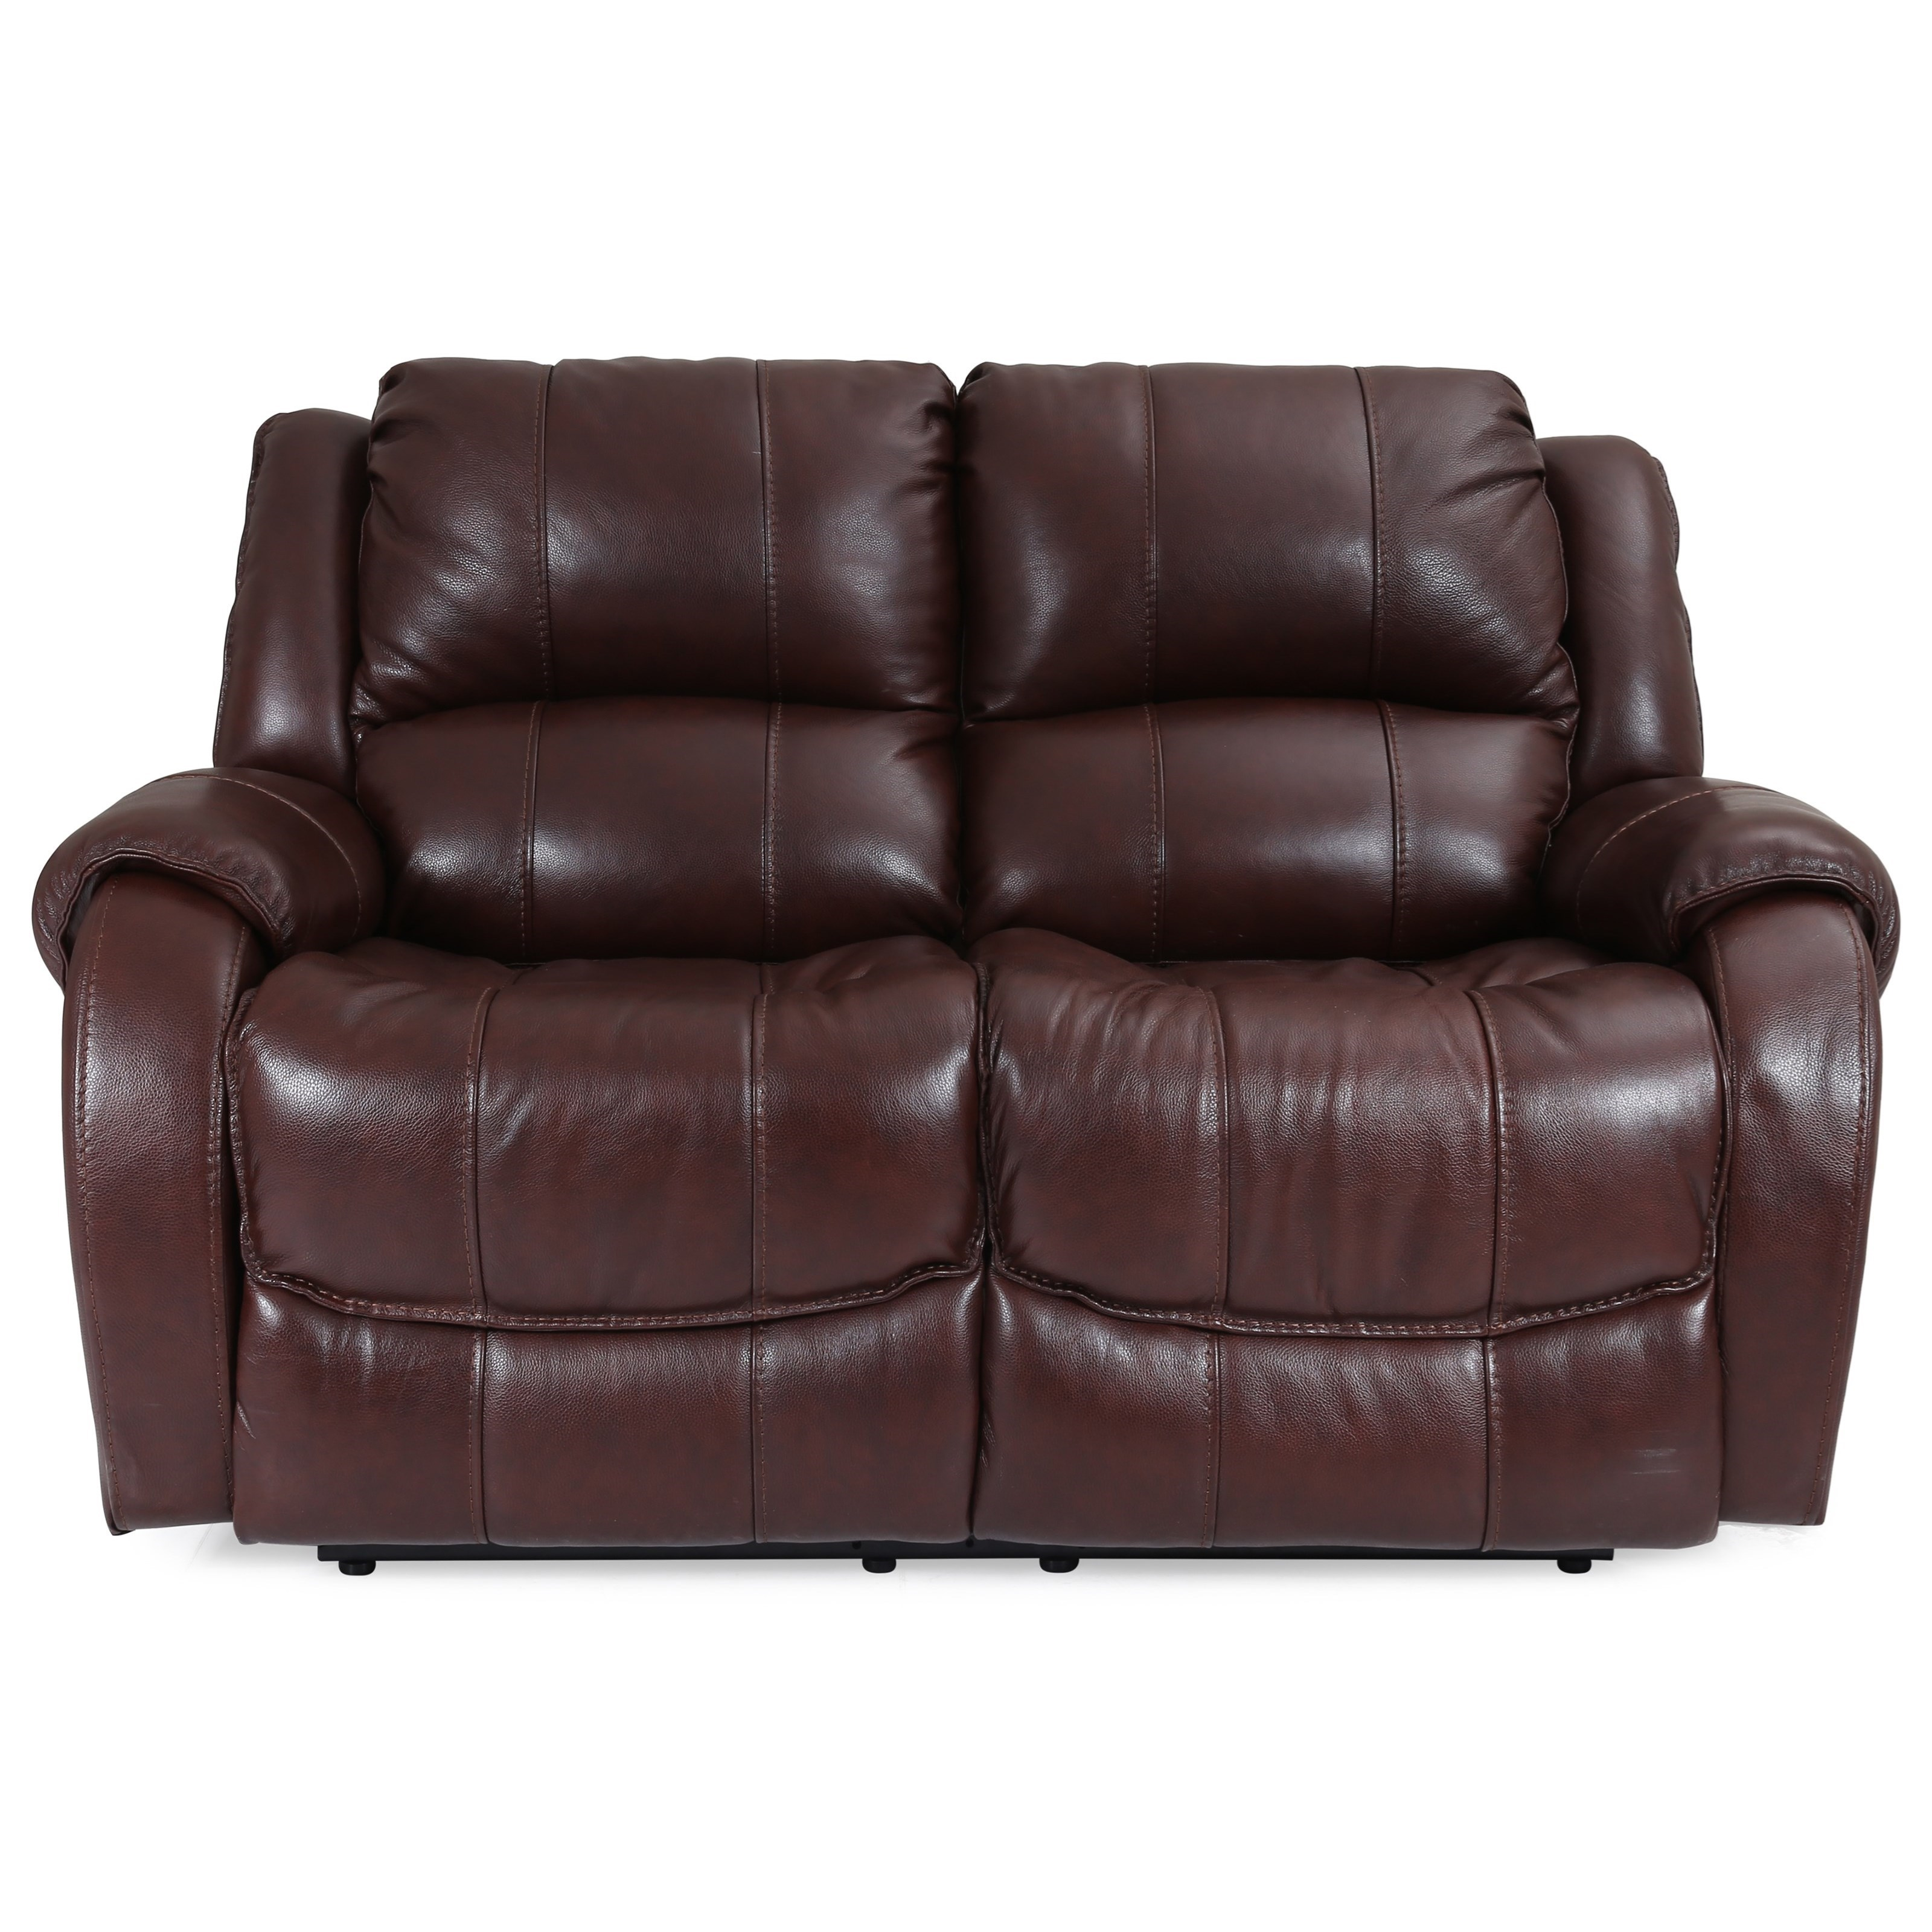 5171 Power Loveseat with Power Headrest at Pilgrim Furniture City